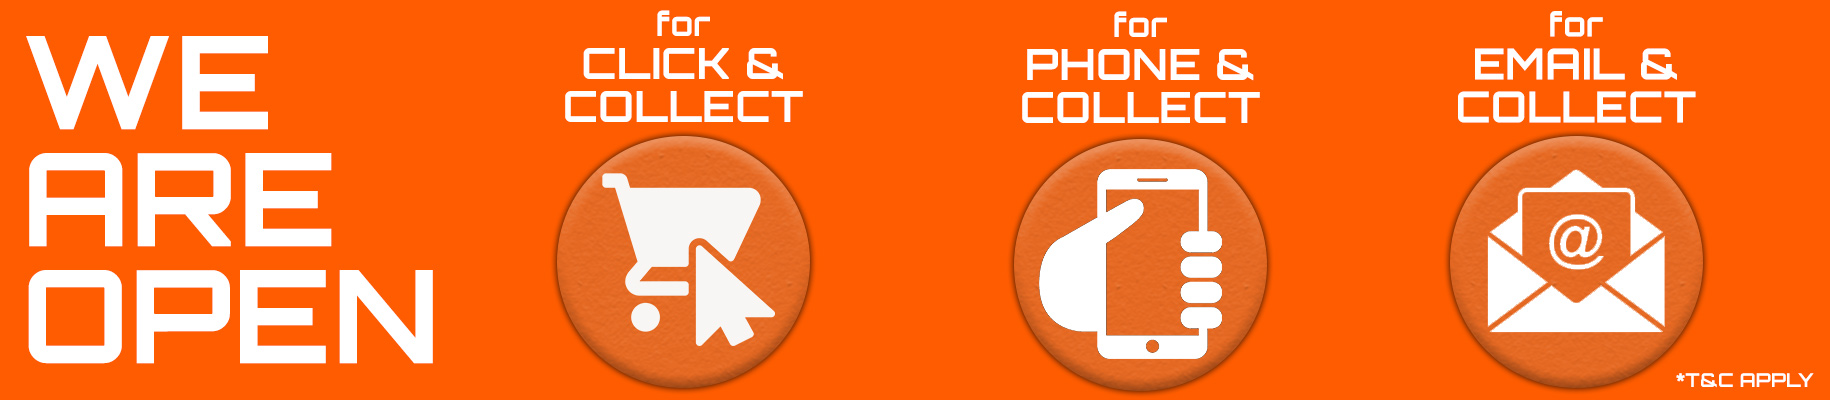 We are open for click and collect, phone and collect, email and collect